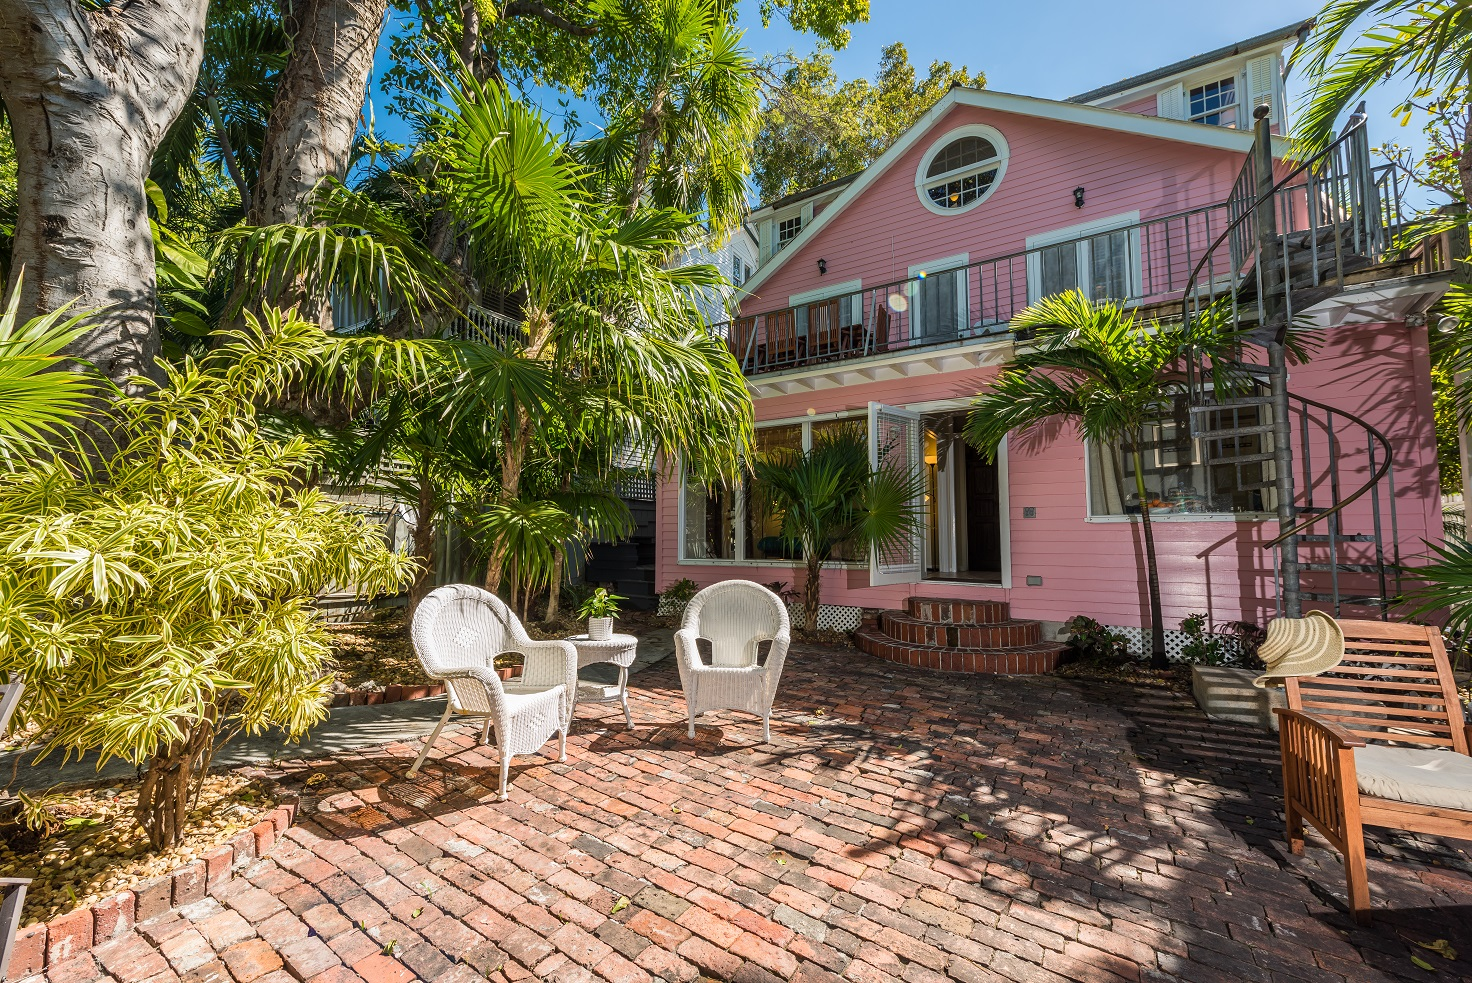 Key West Vacation Rental - William Skelton Home - Backyard of Home